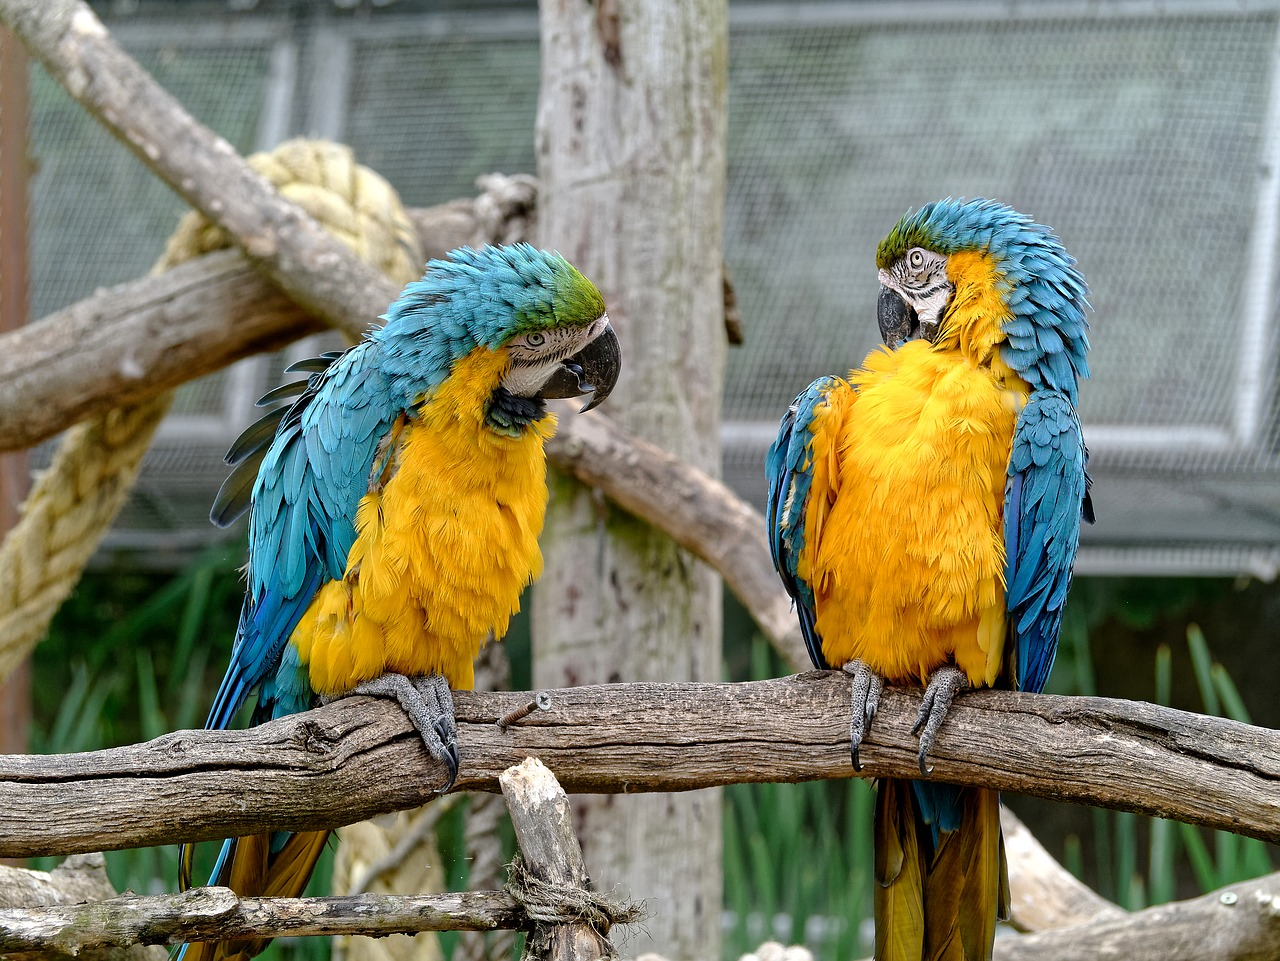 Social media content ideas - parrots having a conversation